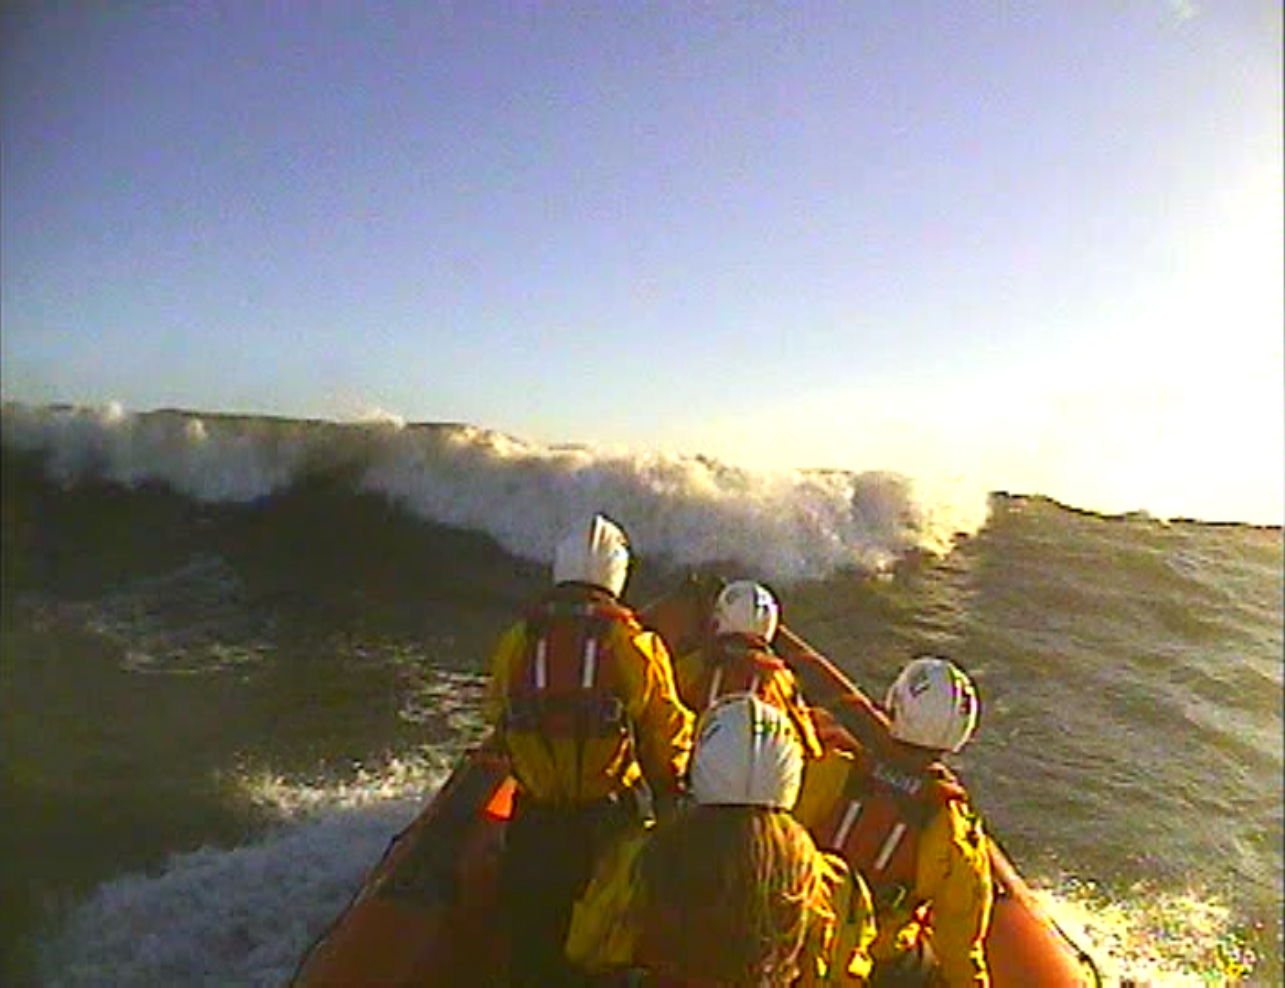 Cullercoats RNLI B class Atlantic 85 lifeboat approaches a large breaking wave during the search.